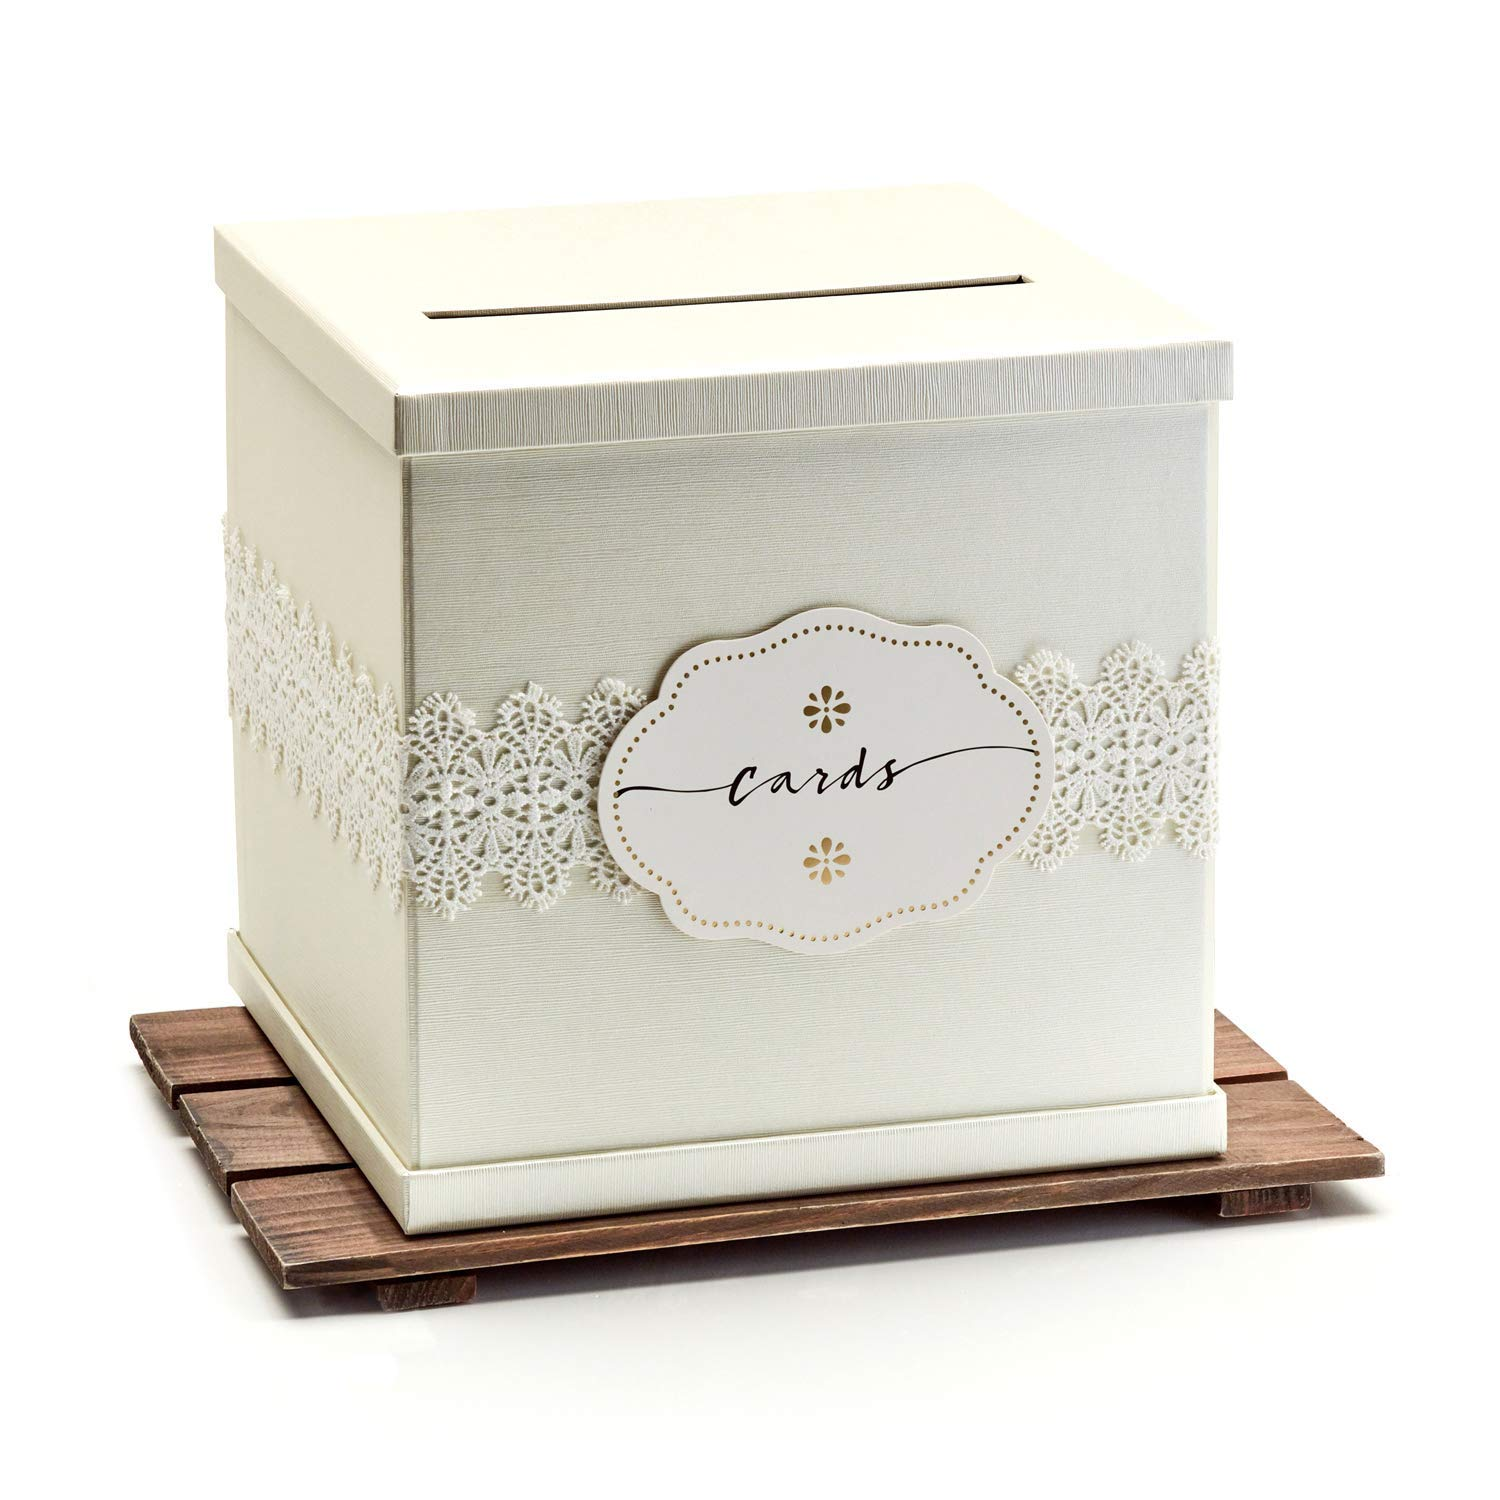 """Hayley Cherie - Ivory Gift Card Box with White Lace and Cards Label - Ivory Textured Finish - Large Size 10"""" x 10"""" - Perfect for Weddings, Baby Showers, Birthdays, Graduation"""